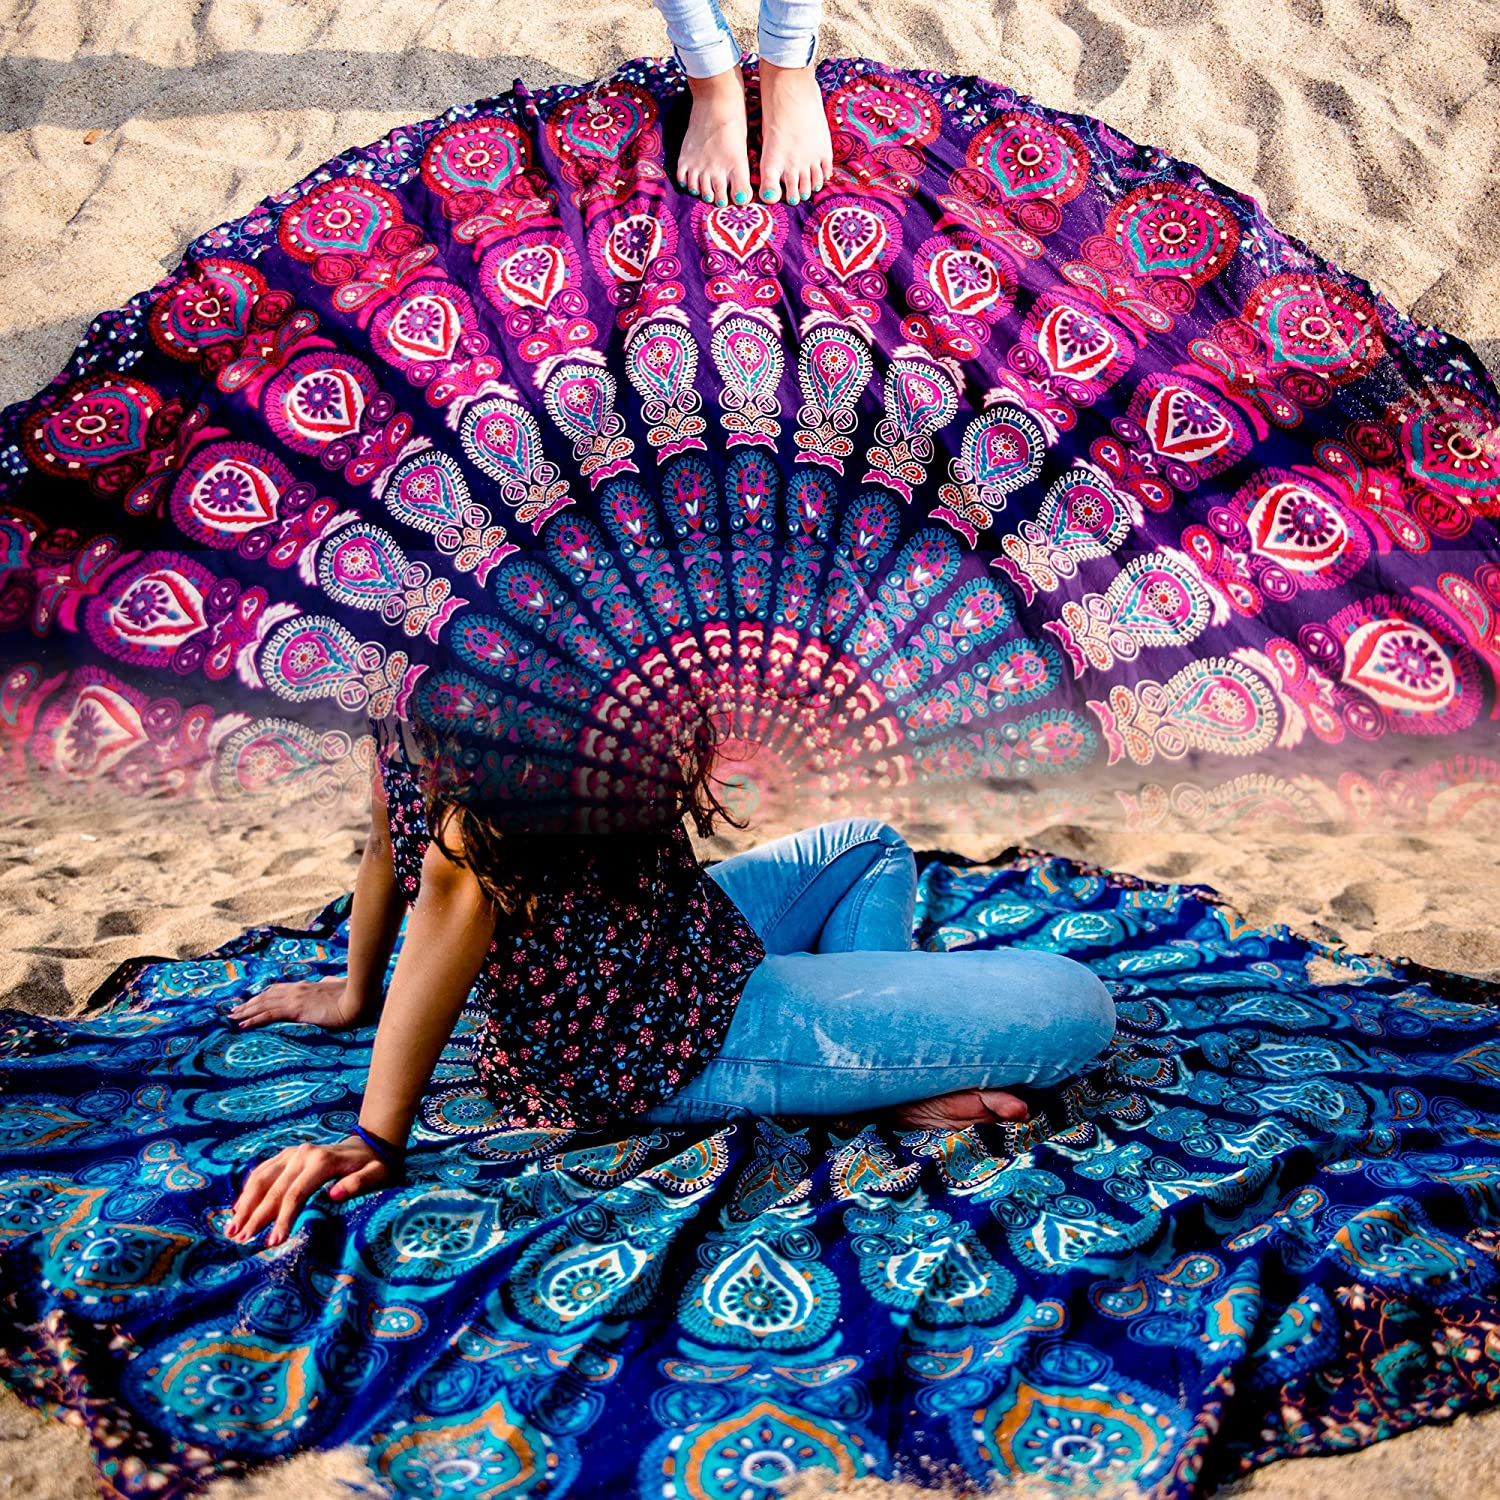 Set of 2 Mandala Tapestry Hippie Indian Round Mandala Beach Blanket Picnic Table Cover Spread Boho Gypsy Cotton Tablecloth Beach Towel Meditation Rug Circle Yoga Mat - 72 Inches, Blue and Pink